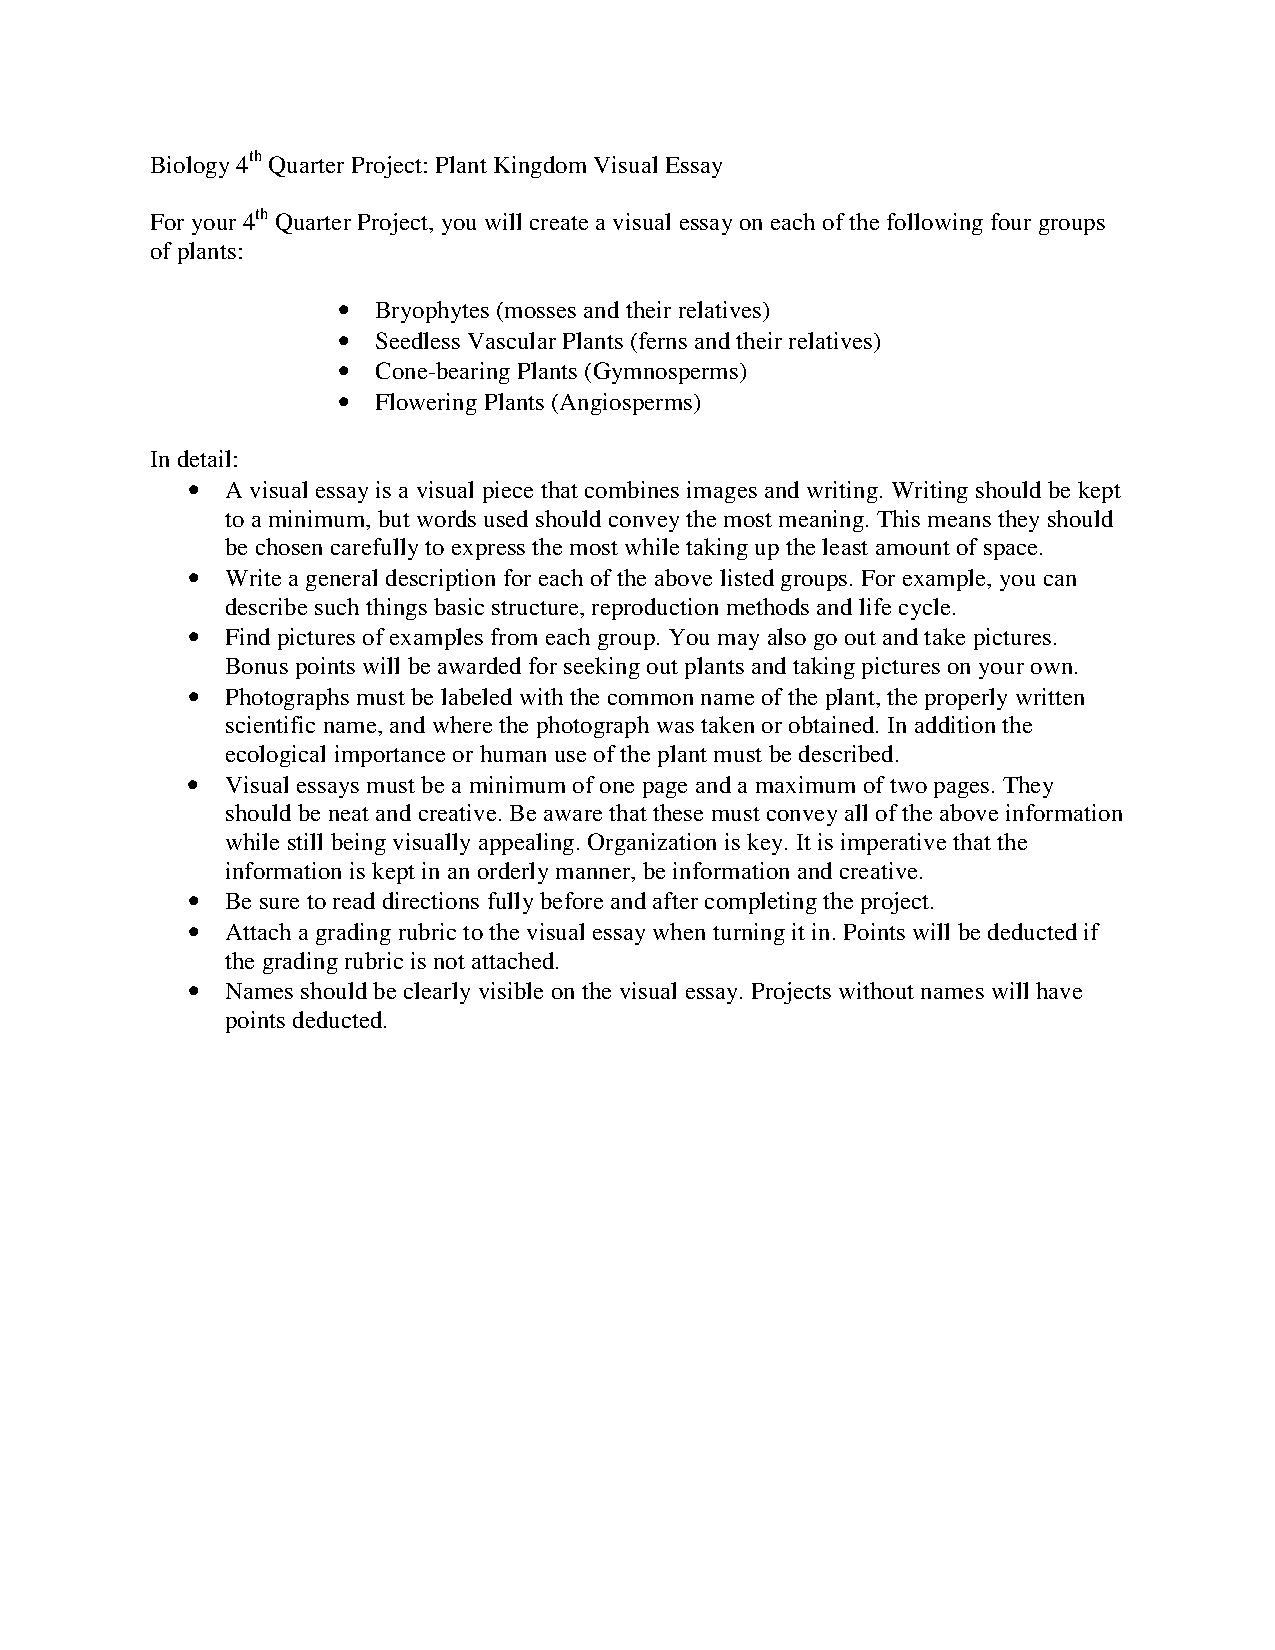 Resume Writers Washington Dc Essay Questions Ap Biology